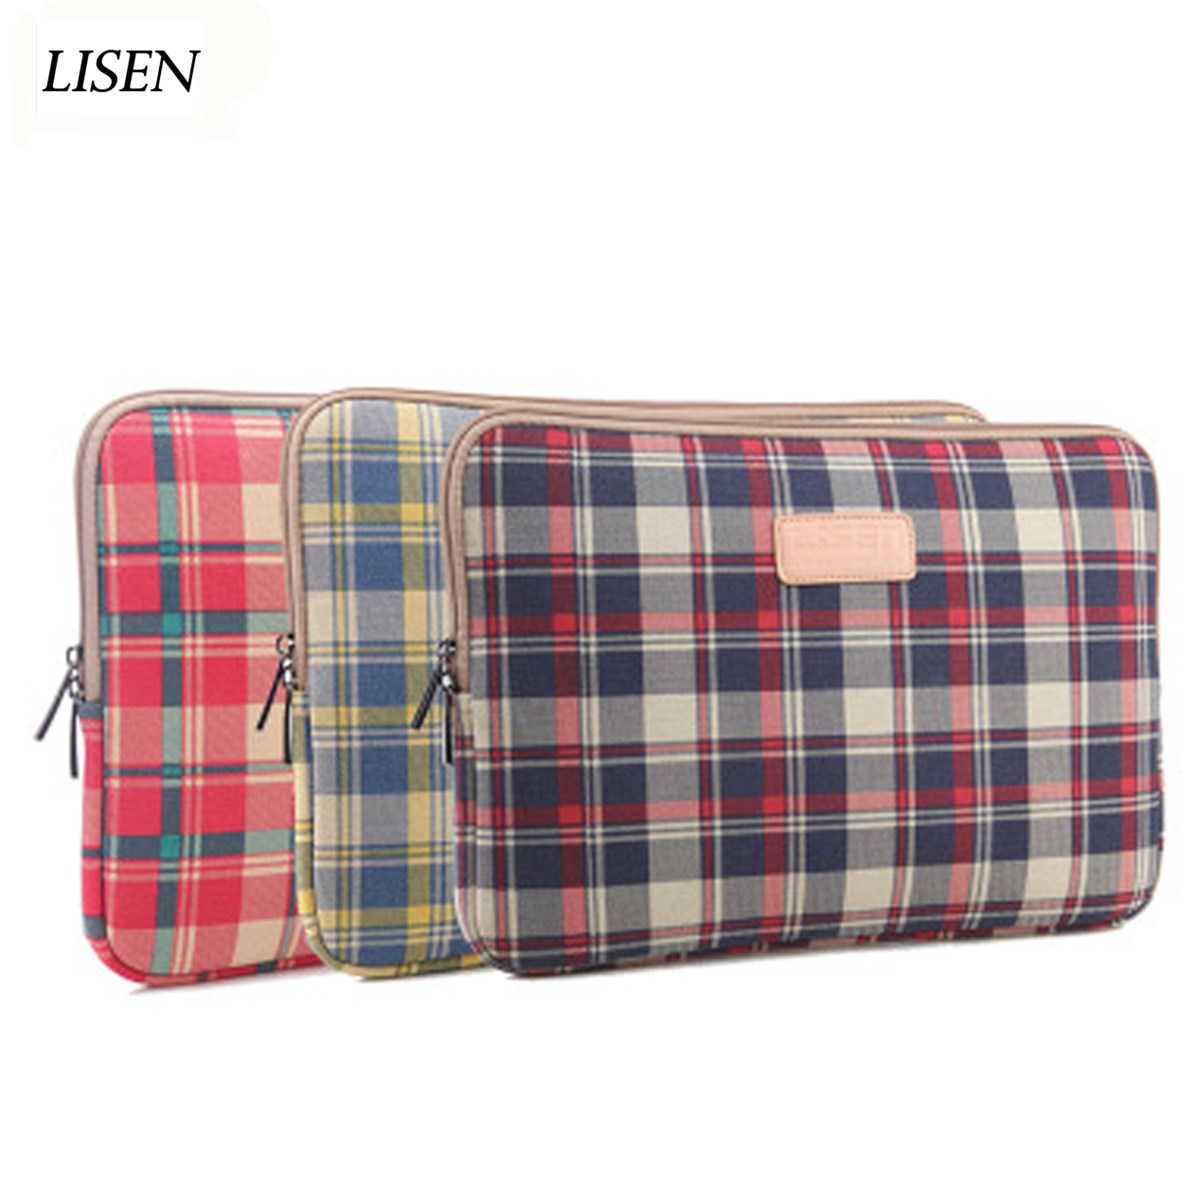 Sleeve Case Notebook For Macbook Air Pro Retina 11 11.6 12 13 13.3 14 15 15.6 Laptop bag for ipad mini 7.9 air 9.7 tablet 10